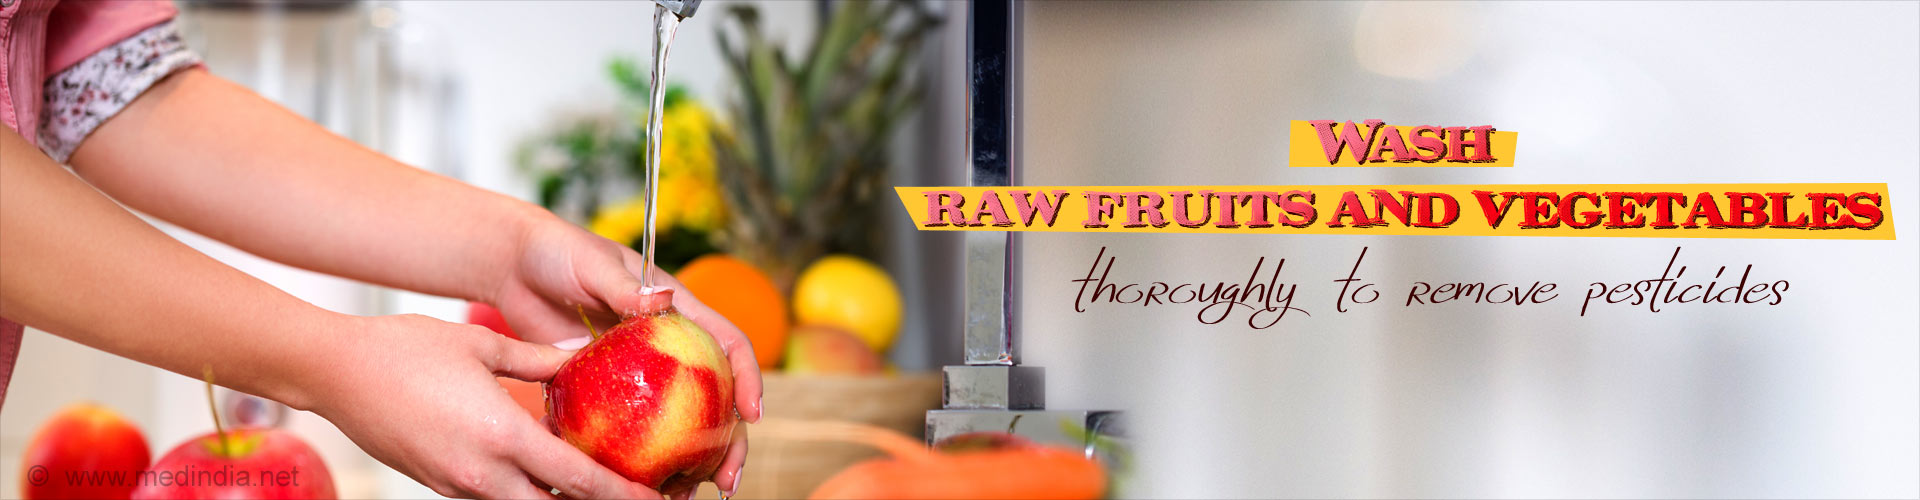 Wash raw fruits and vegetables thoroughly to remove pesticides and prevent intestinal worms